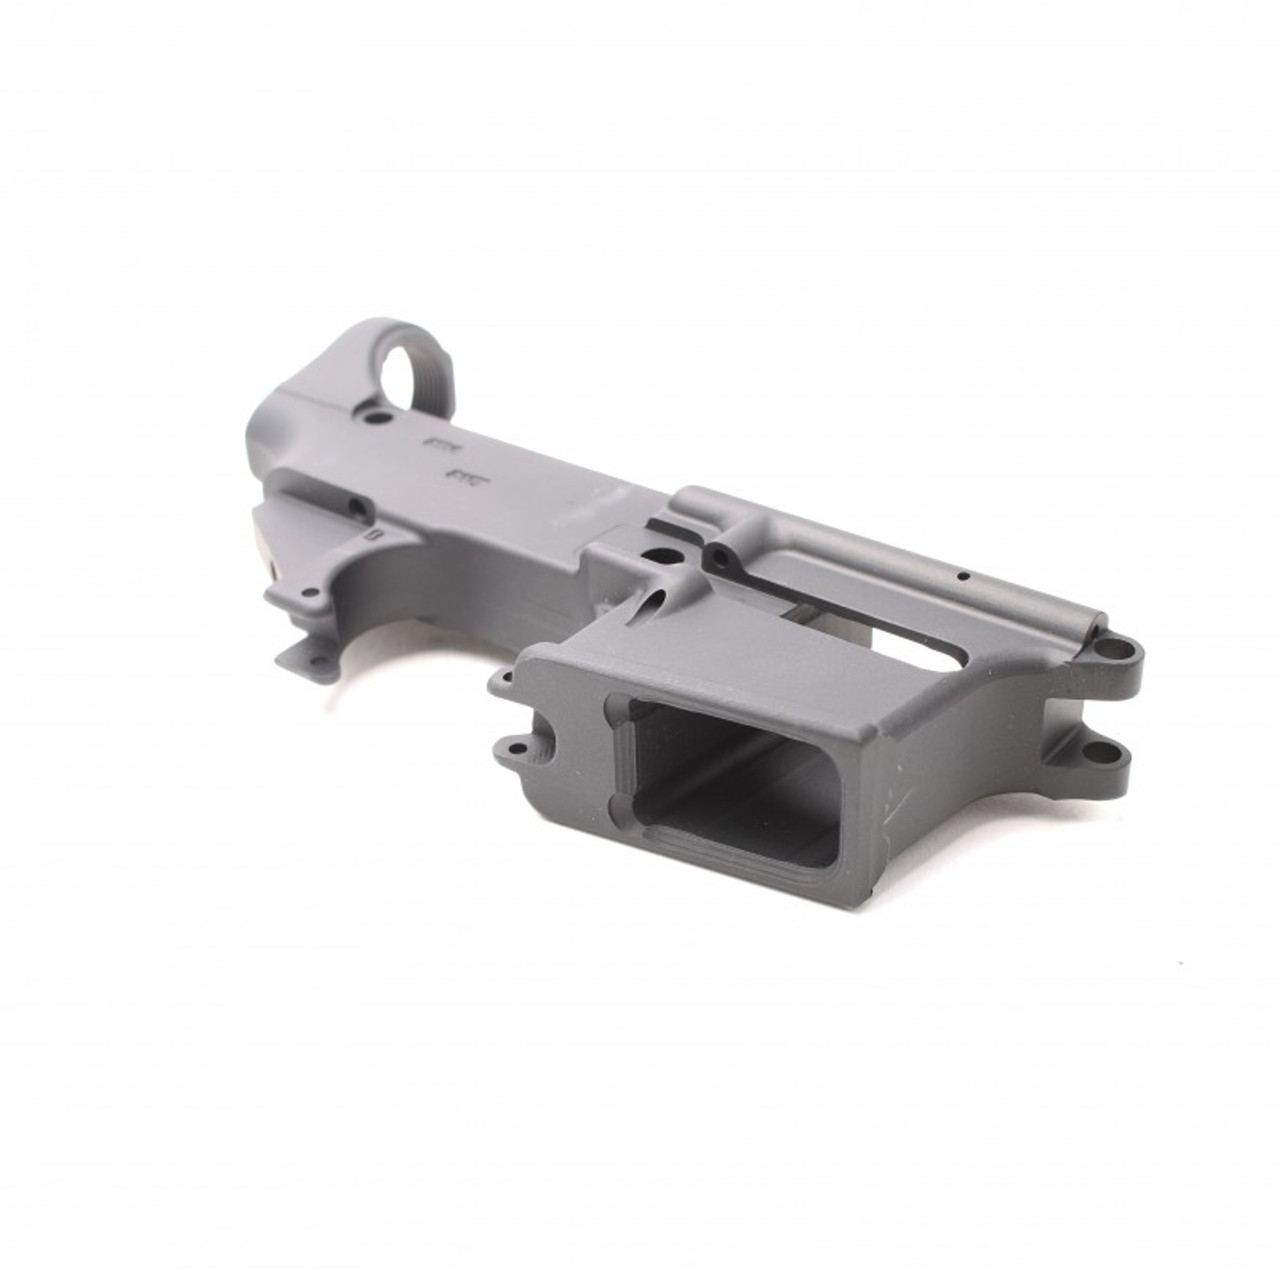 MDX Arms AR9 80% Anodized Lower Receiver Anodized Side Lay